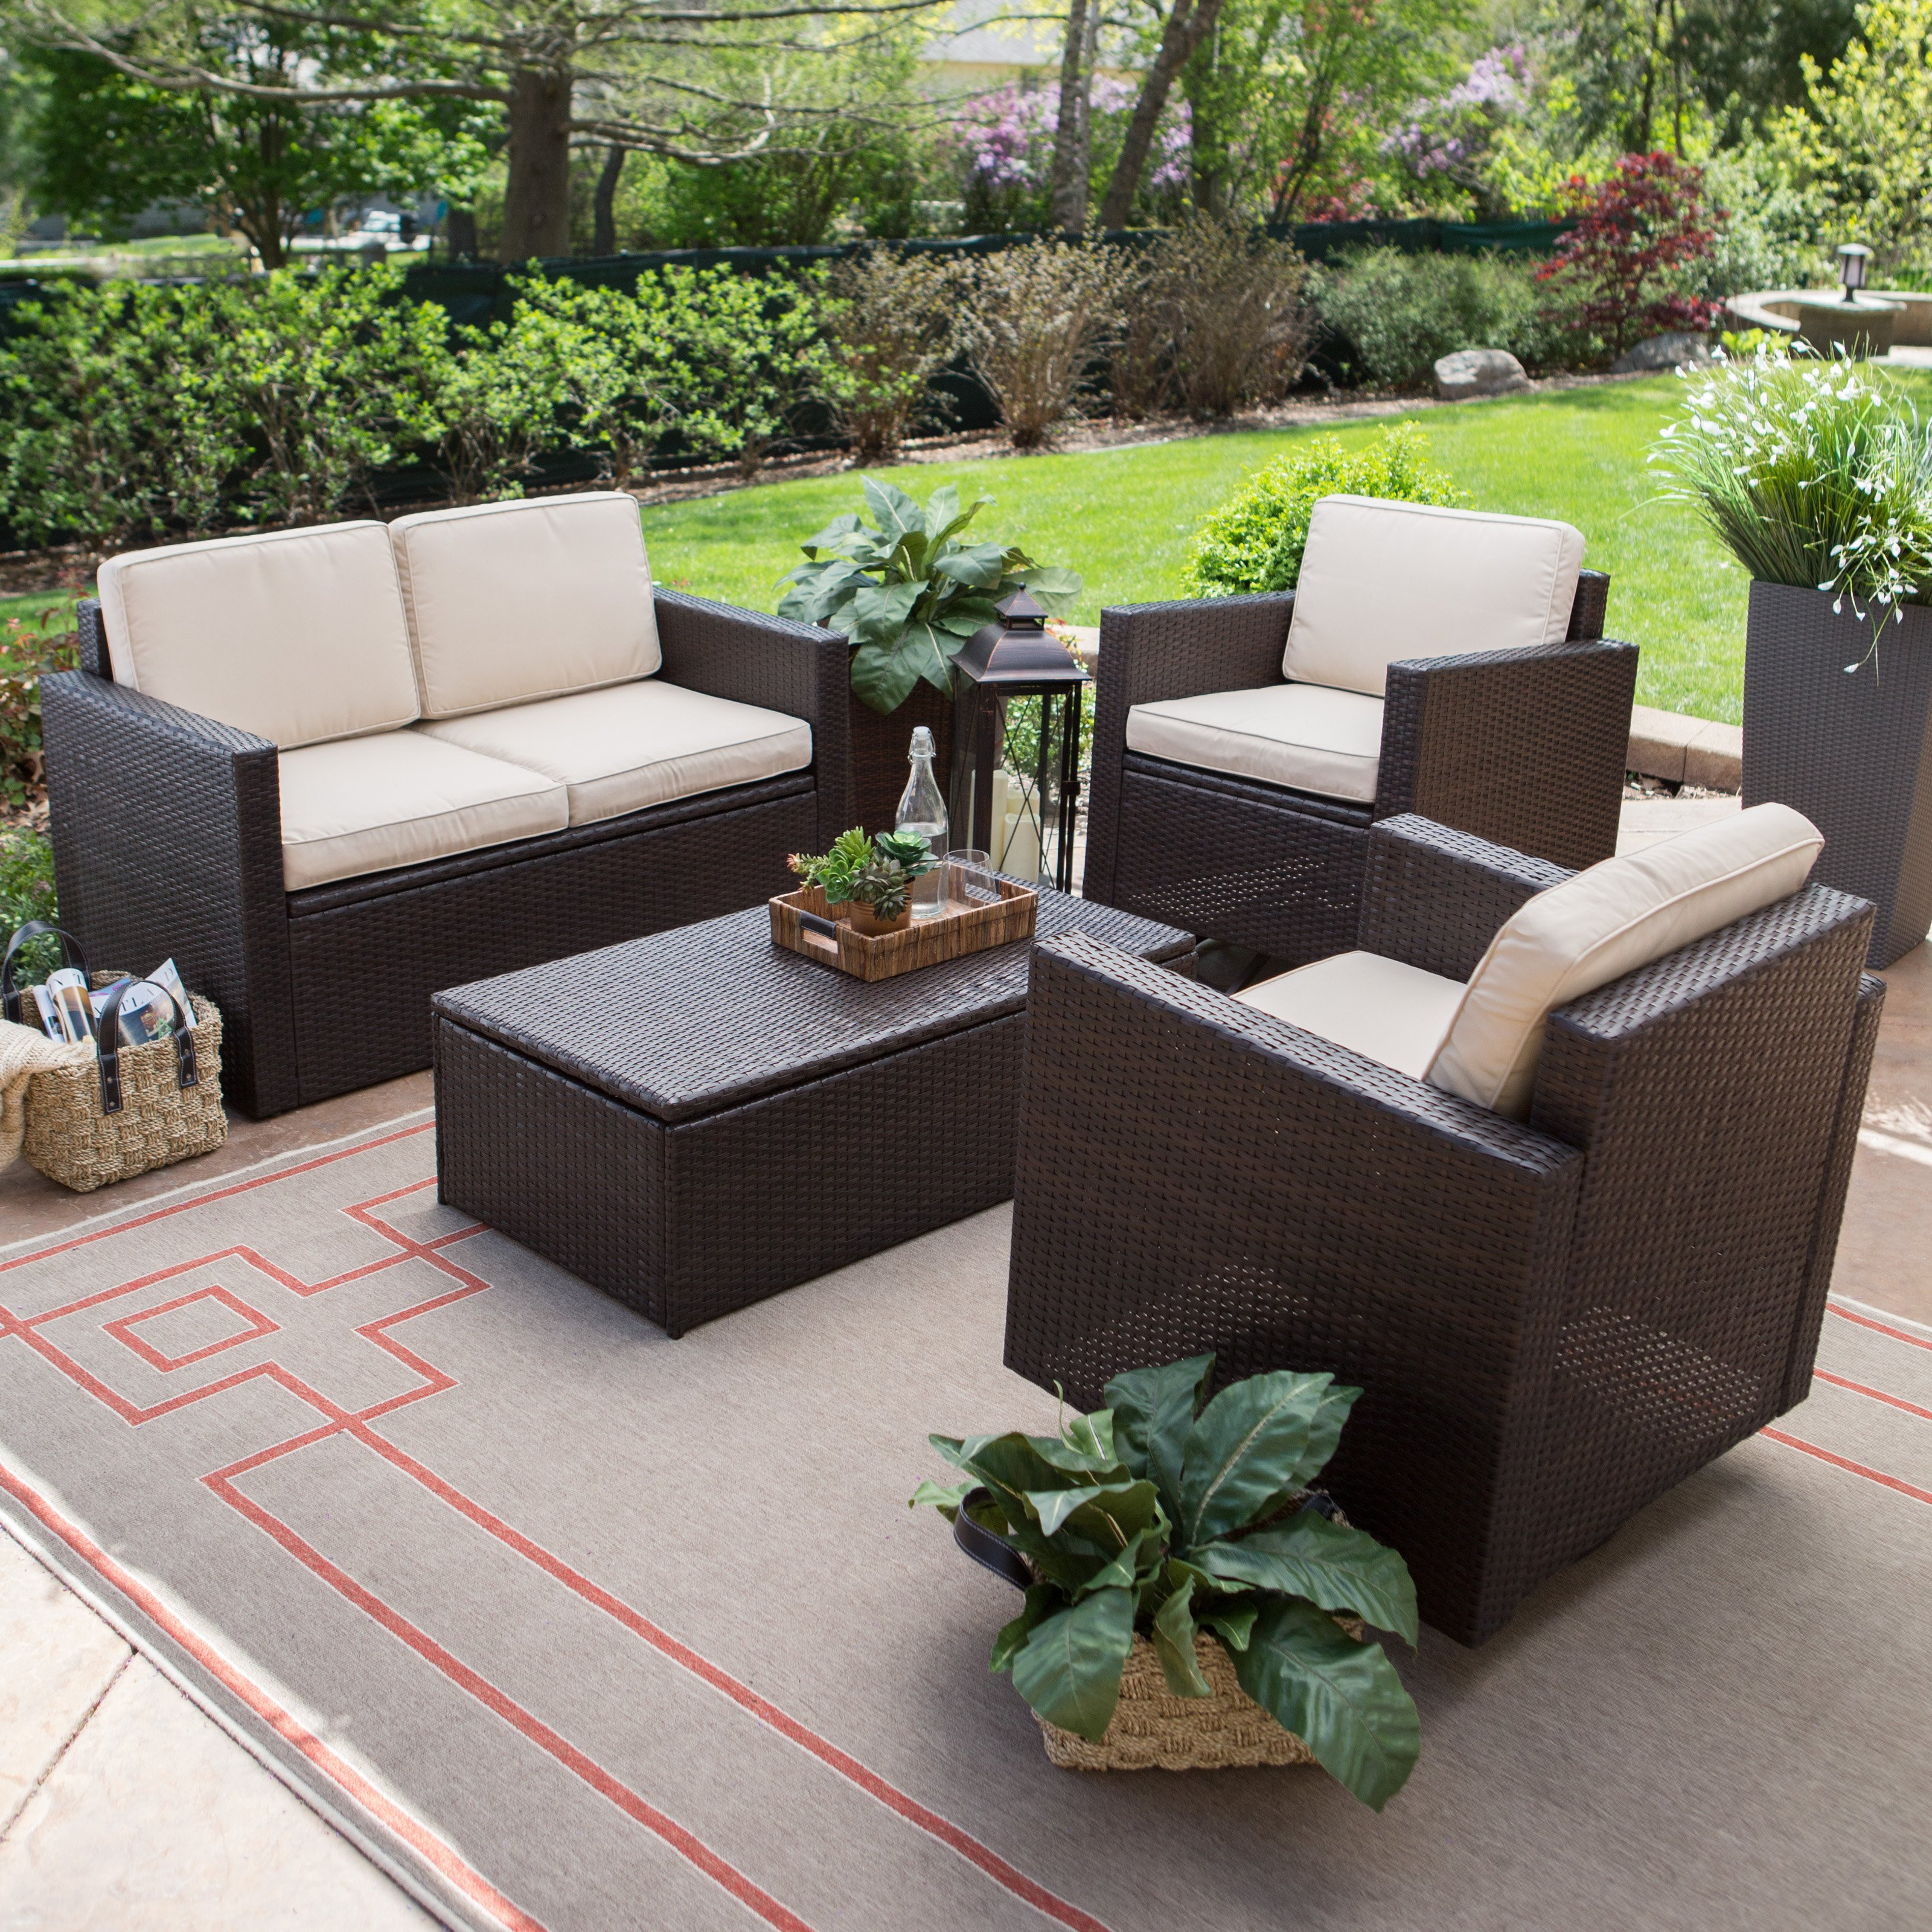 Best ideas about Patio Furniture Set . Save or Pin Coral Coast Berea Wicker 4 Piece Conversation Set with Now.